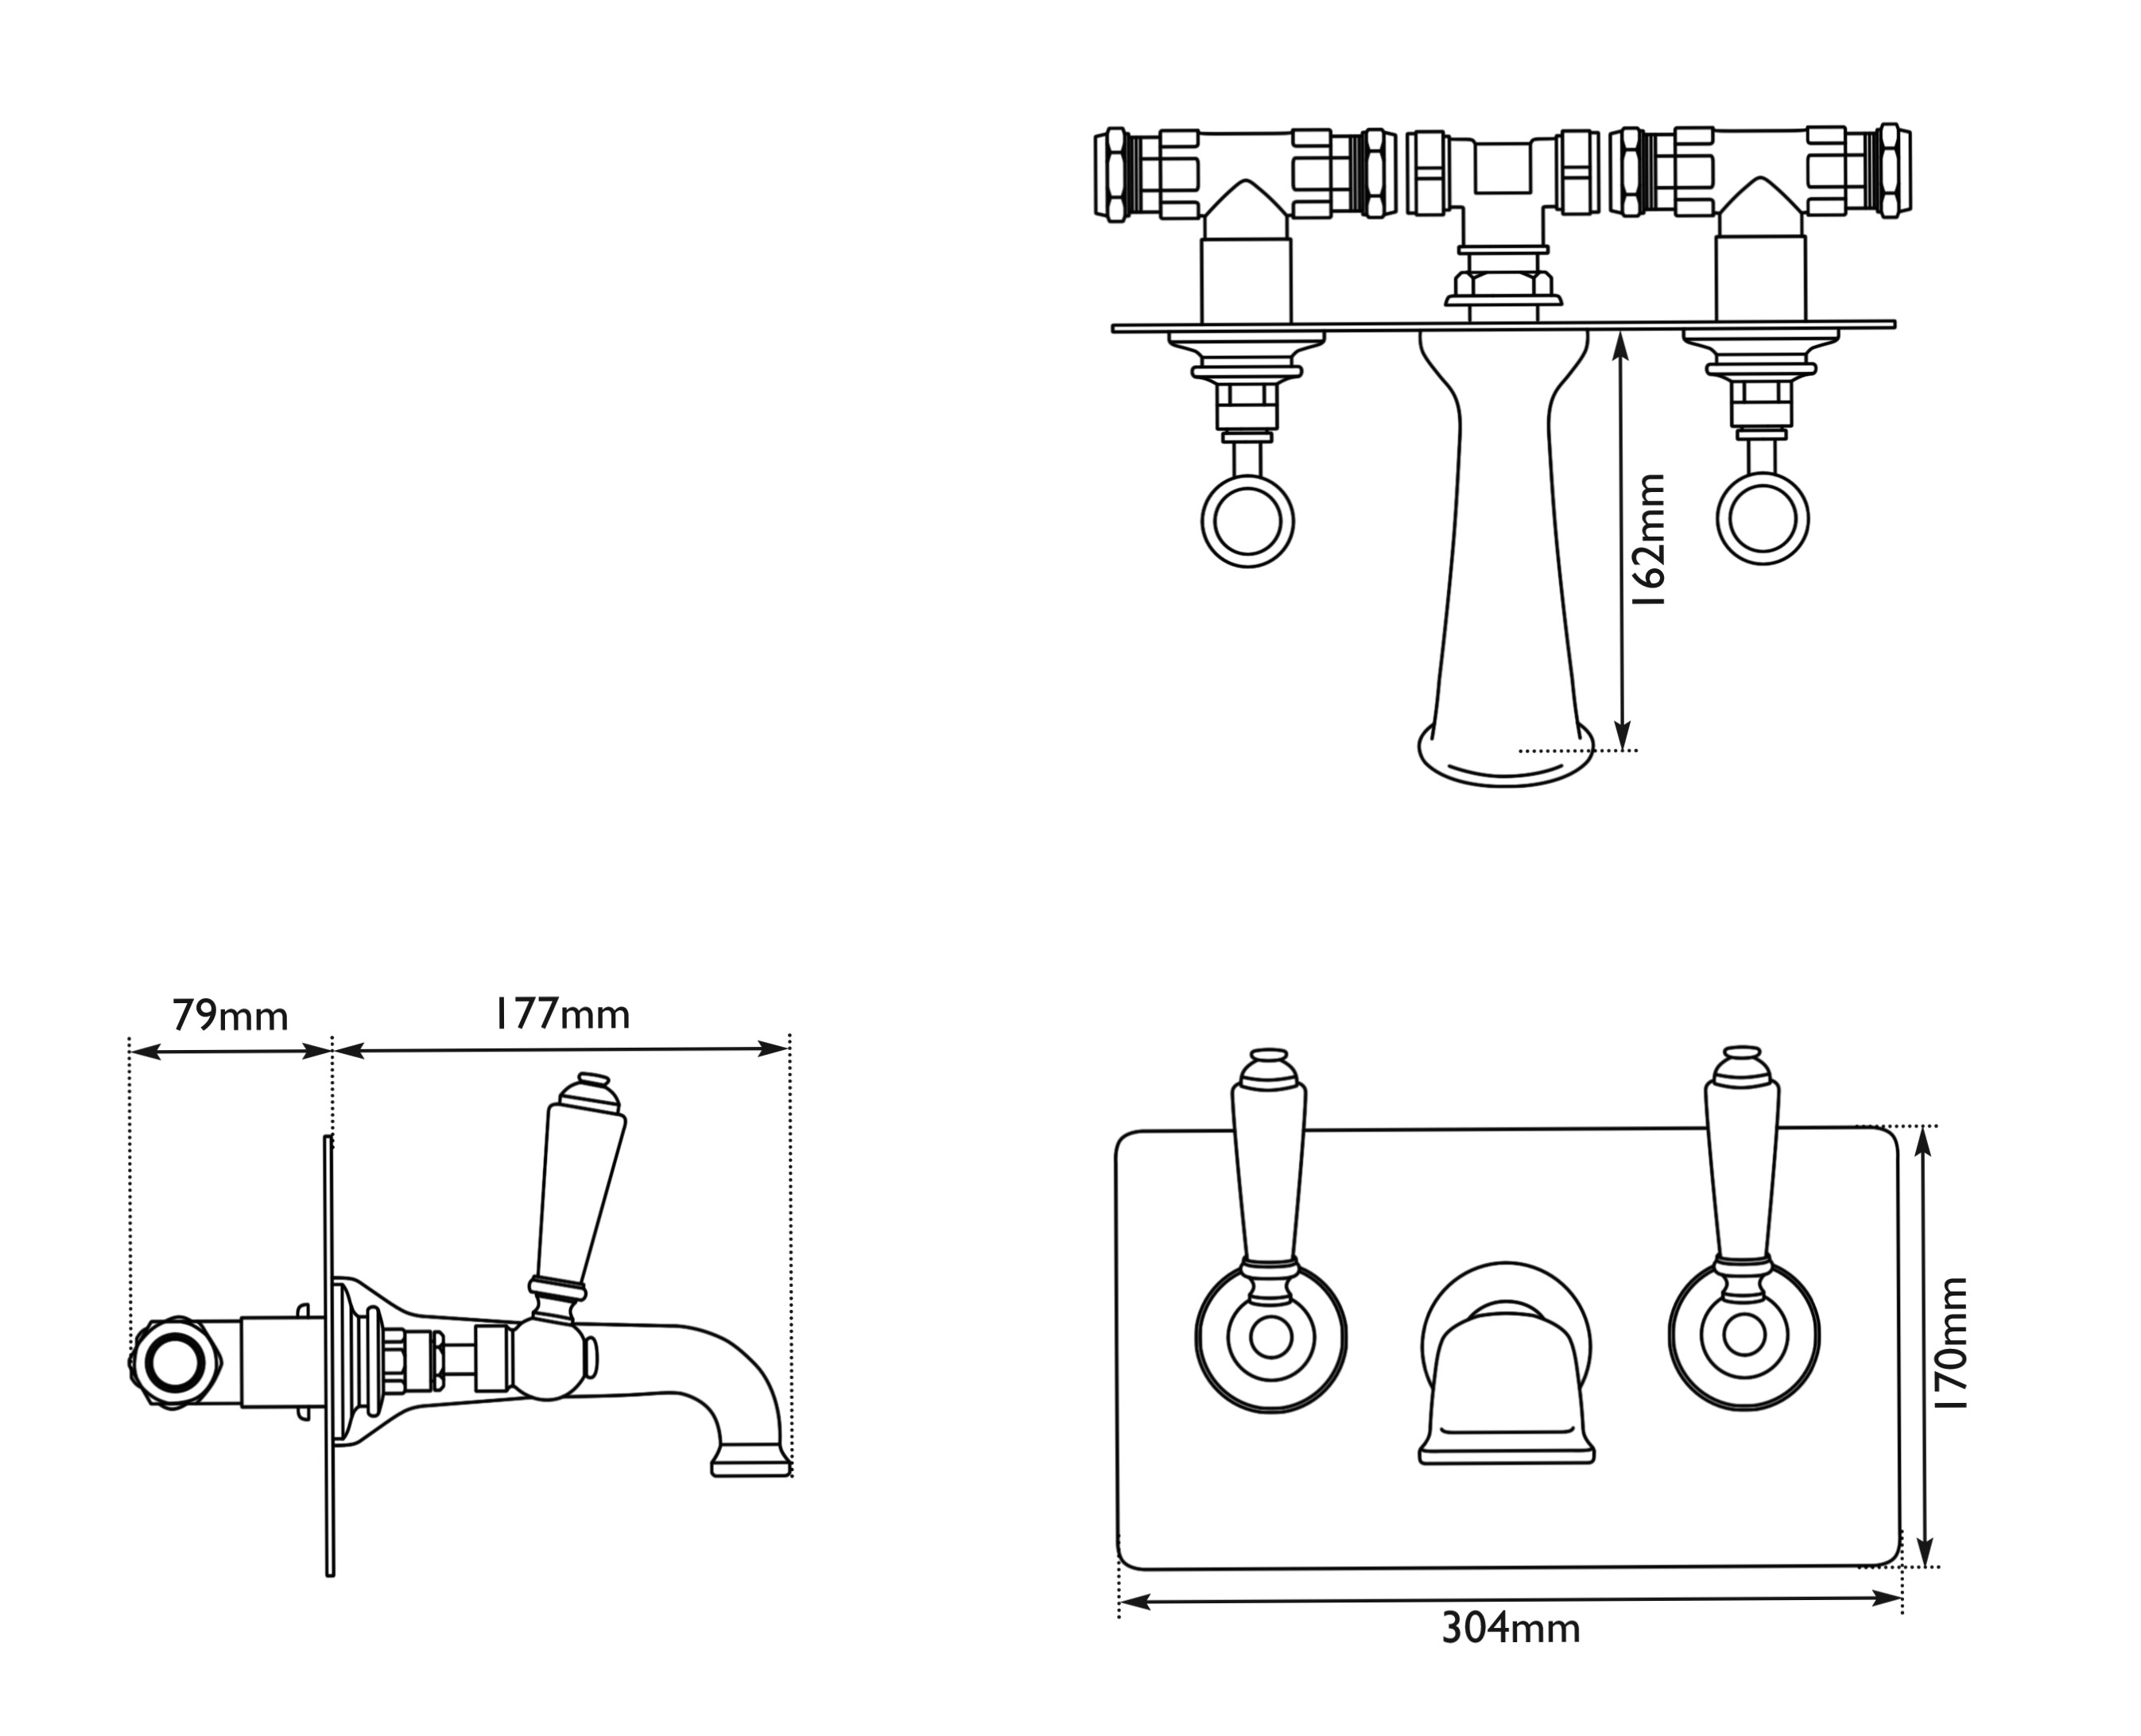 Dimensions Of Hurlingham Wall Mounted Bath Filler With Concealing Plate